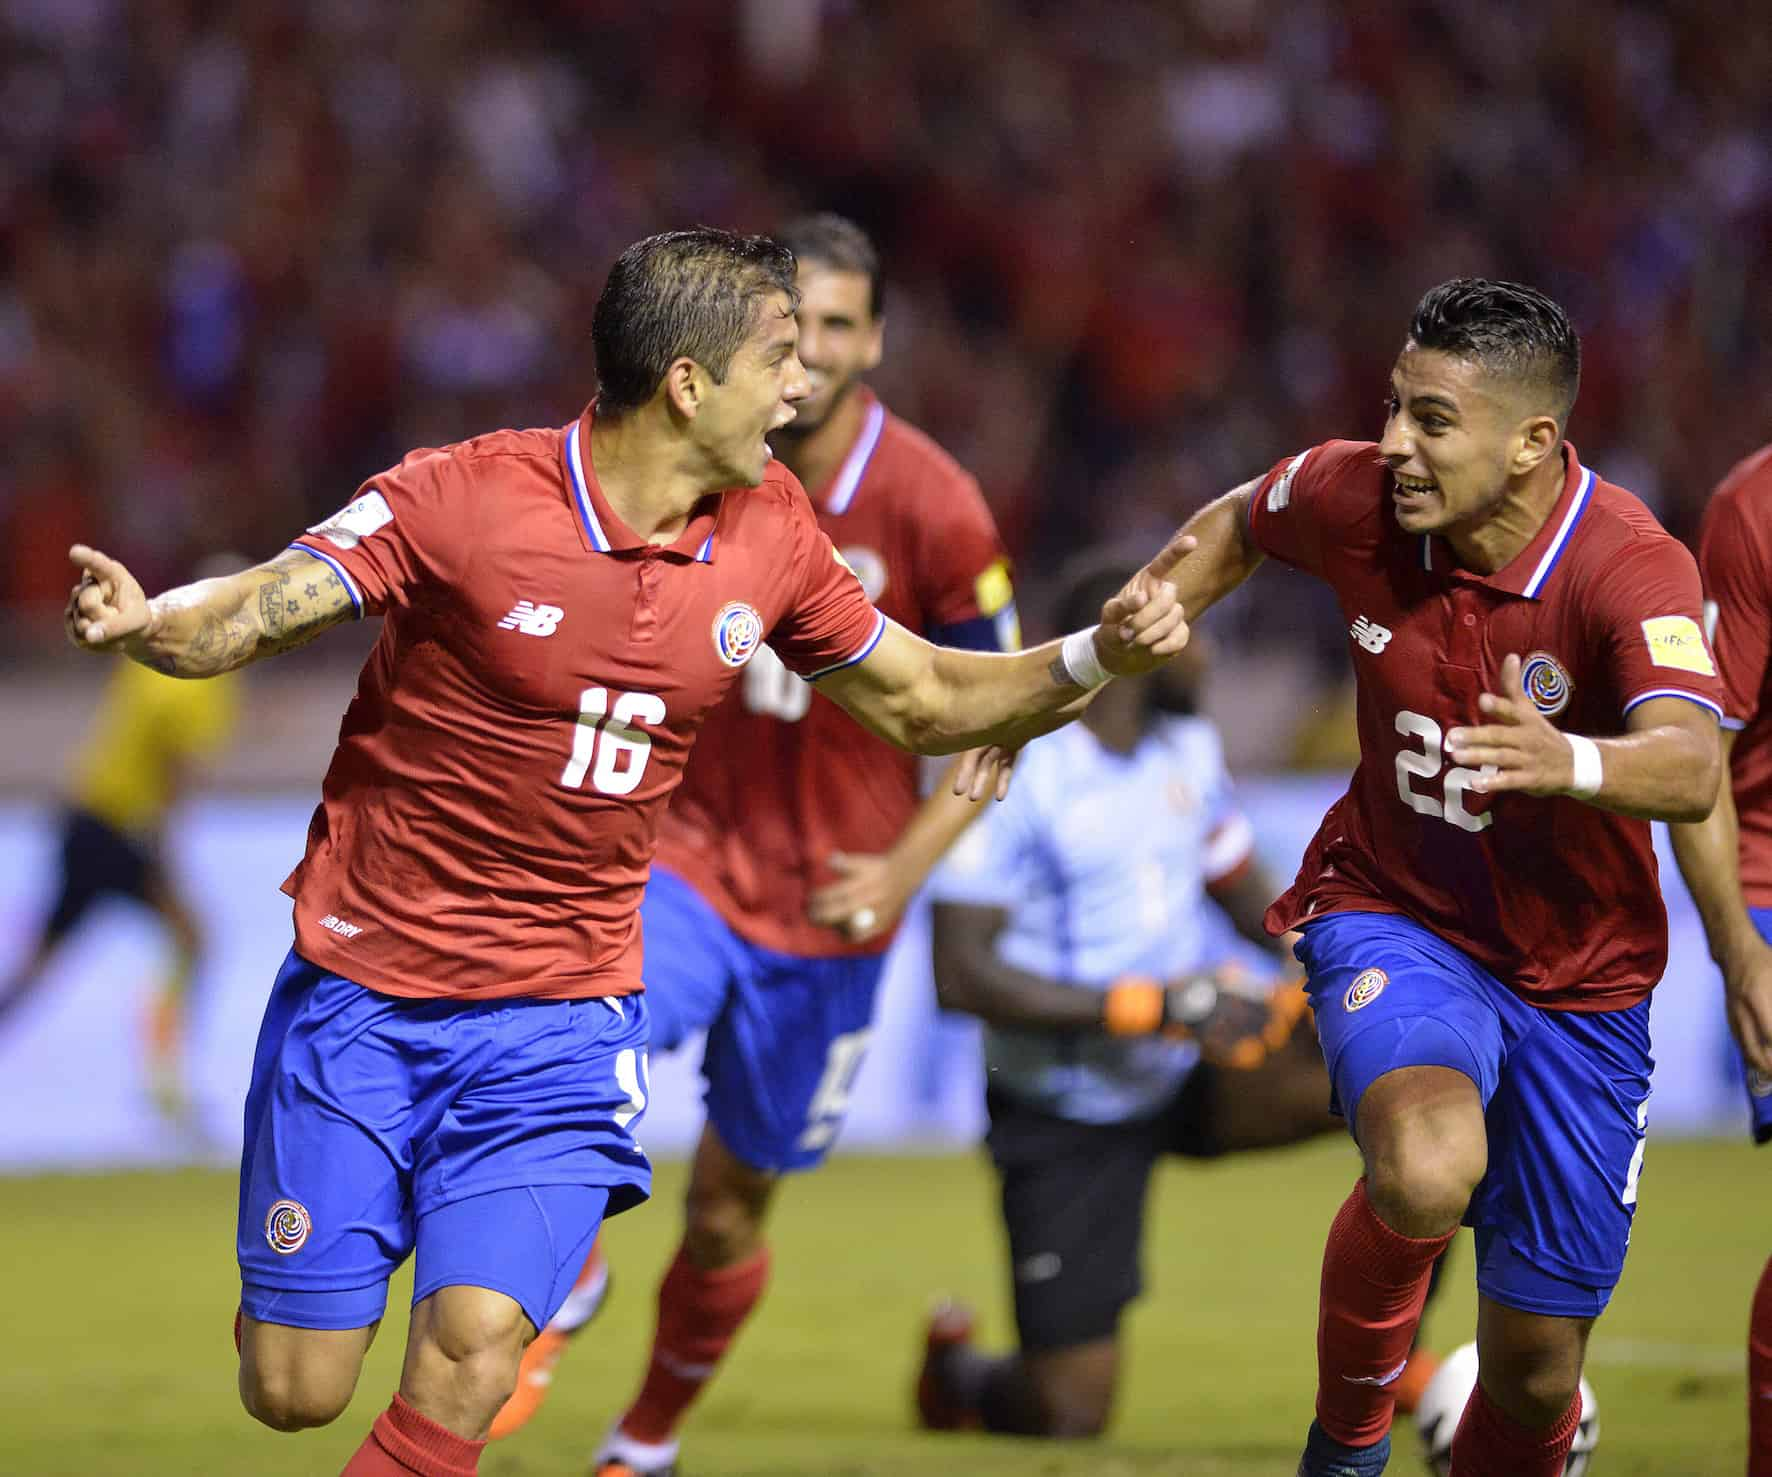 Costa Rica football players Cristian Gamboa and Ronald Matarrita